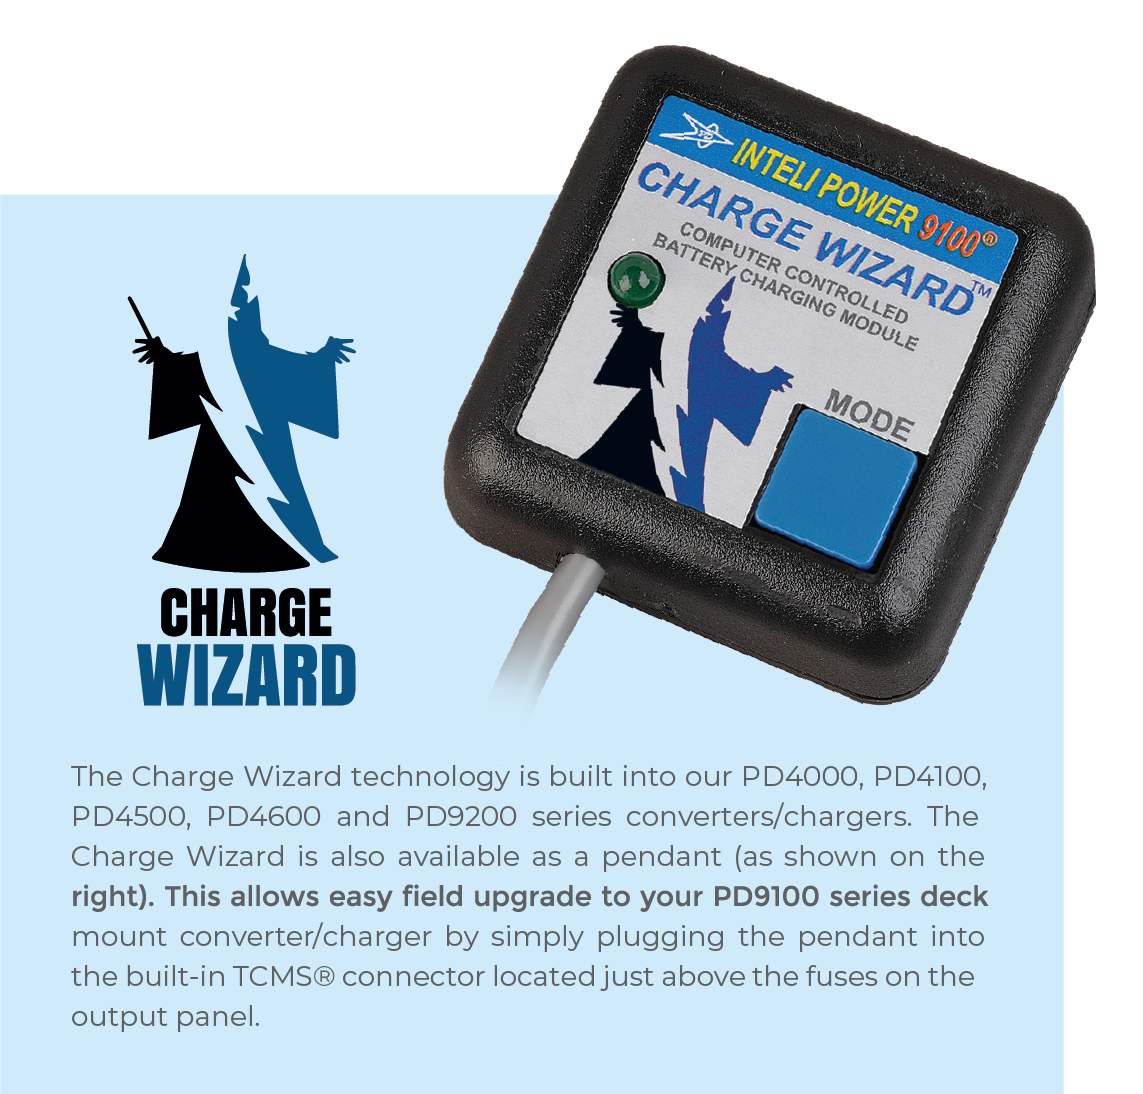 Charge-Wizard-is-built-into